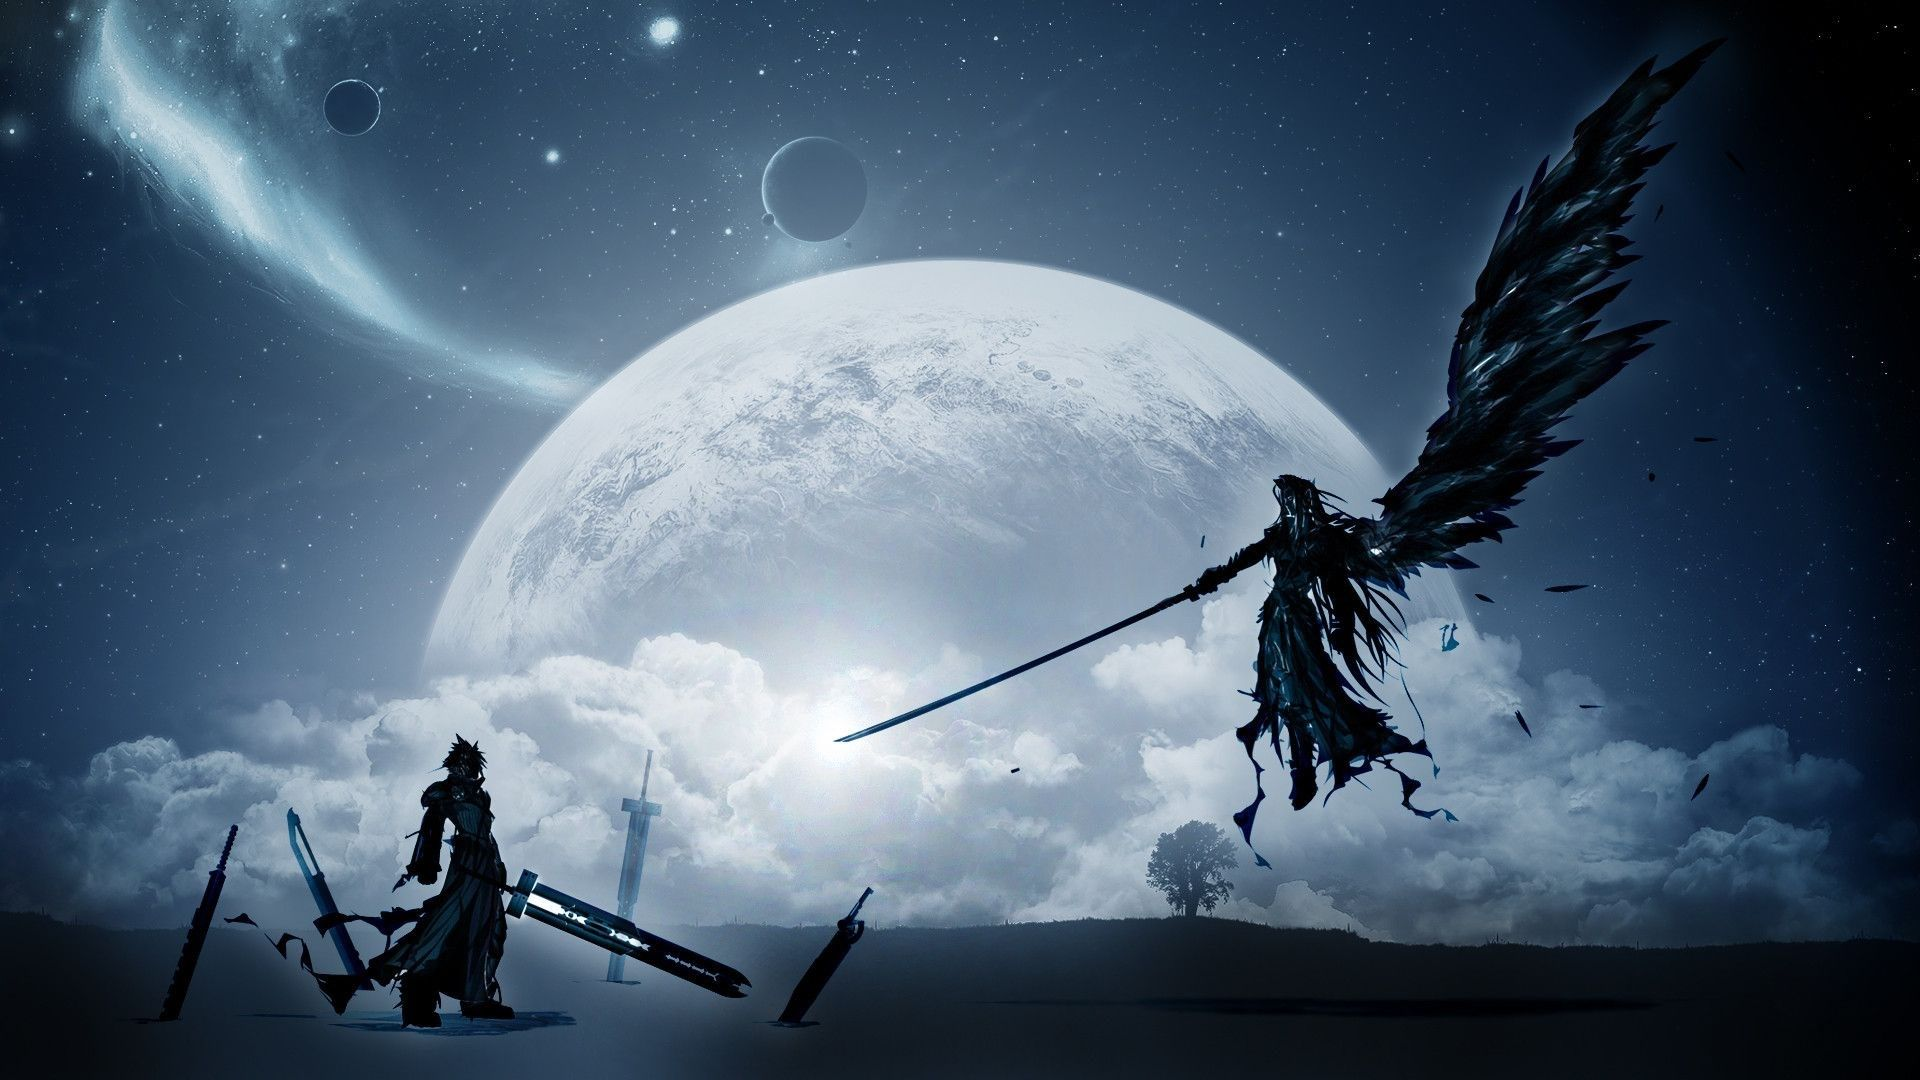 final fantasy xv hd wallpaper | ololoshenka | pinterest | final